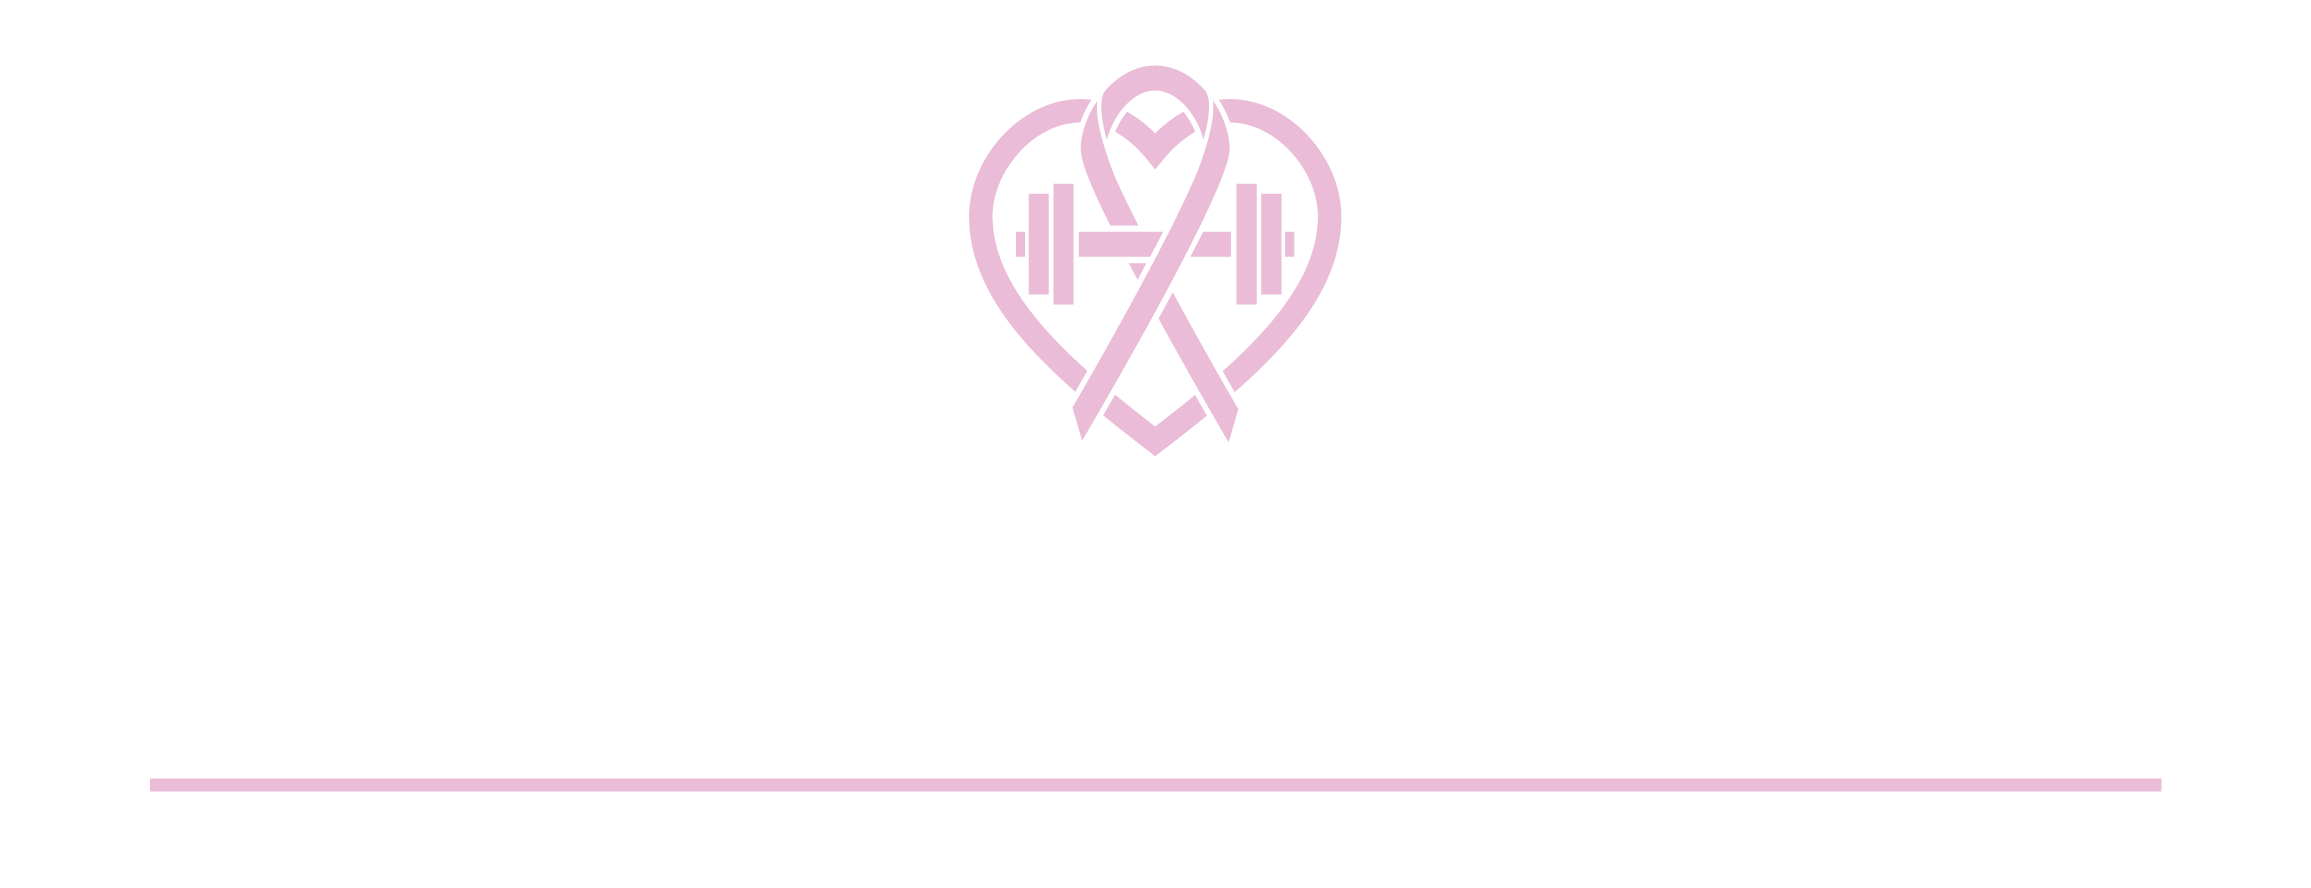 ThePinkSurvivor-Icon and Name-01.png